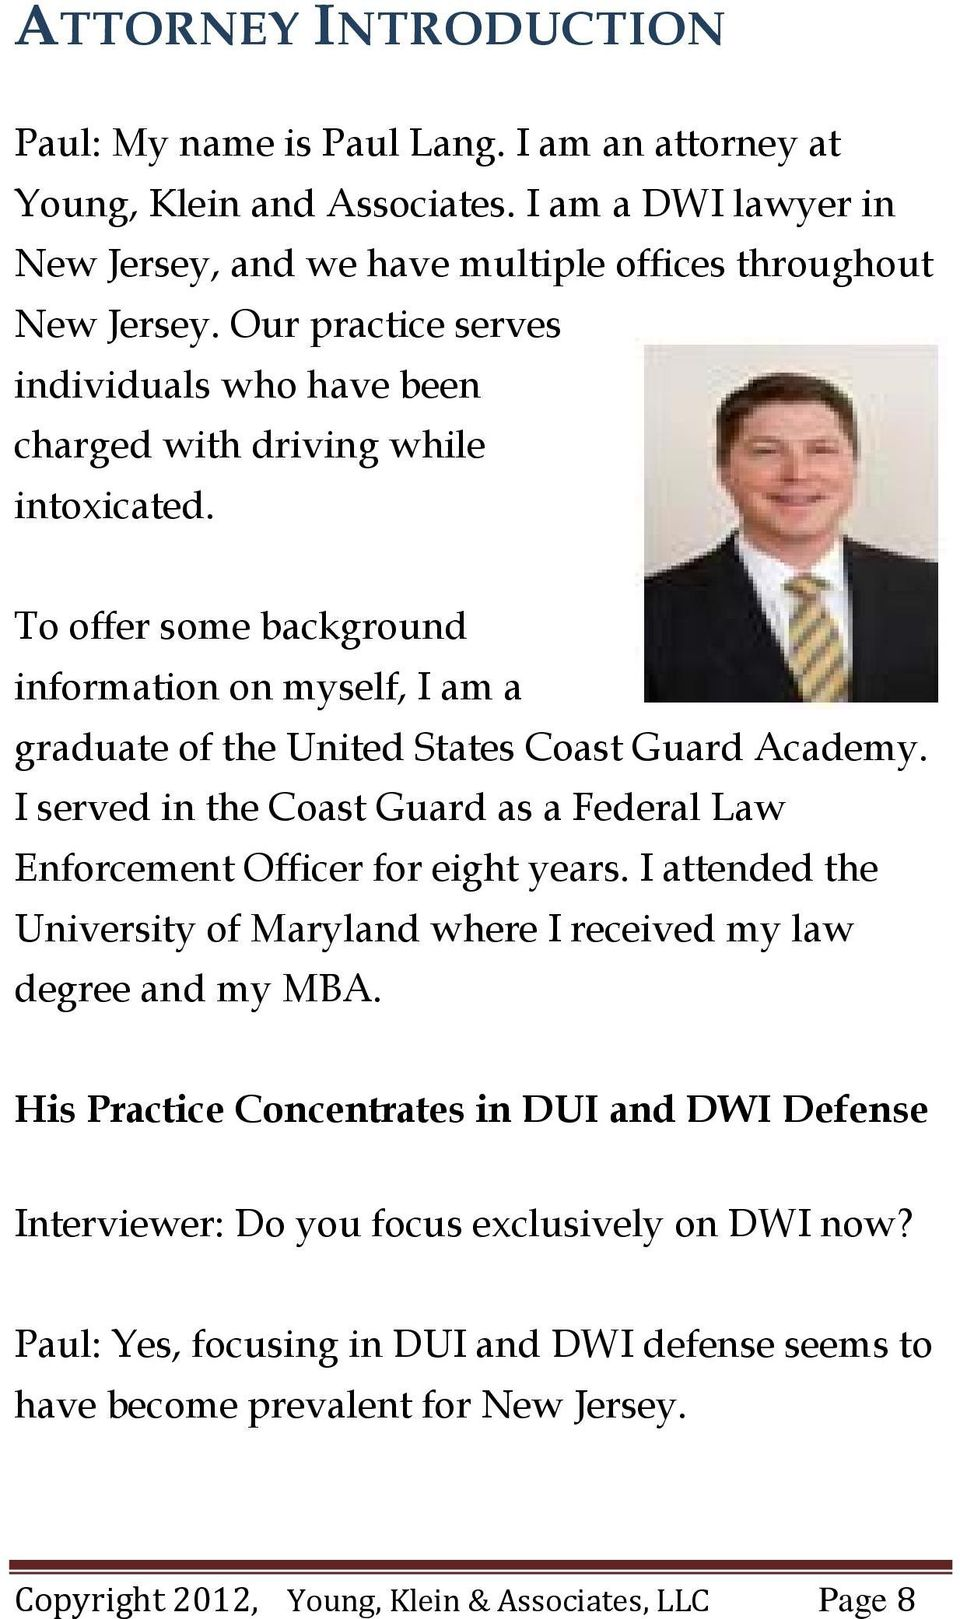 I served in the Coast Guard as a Federal Law Enforcement Officer for eight years. I attended the University of Maryland where I received my law degree and my MBA.